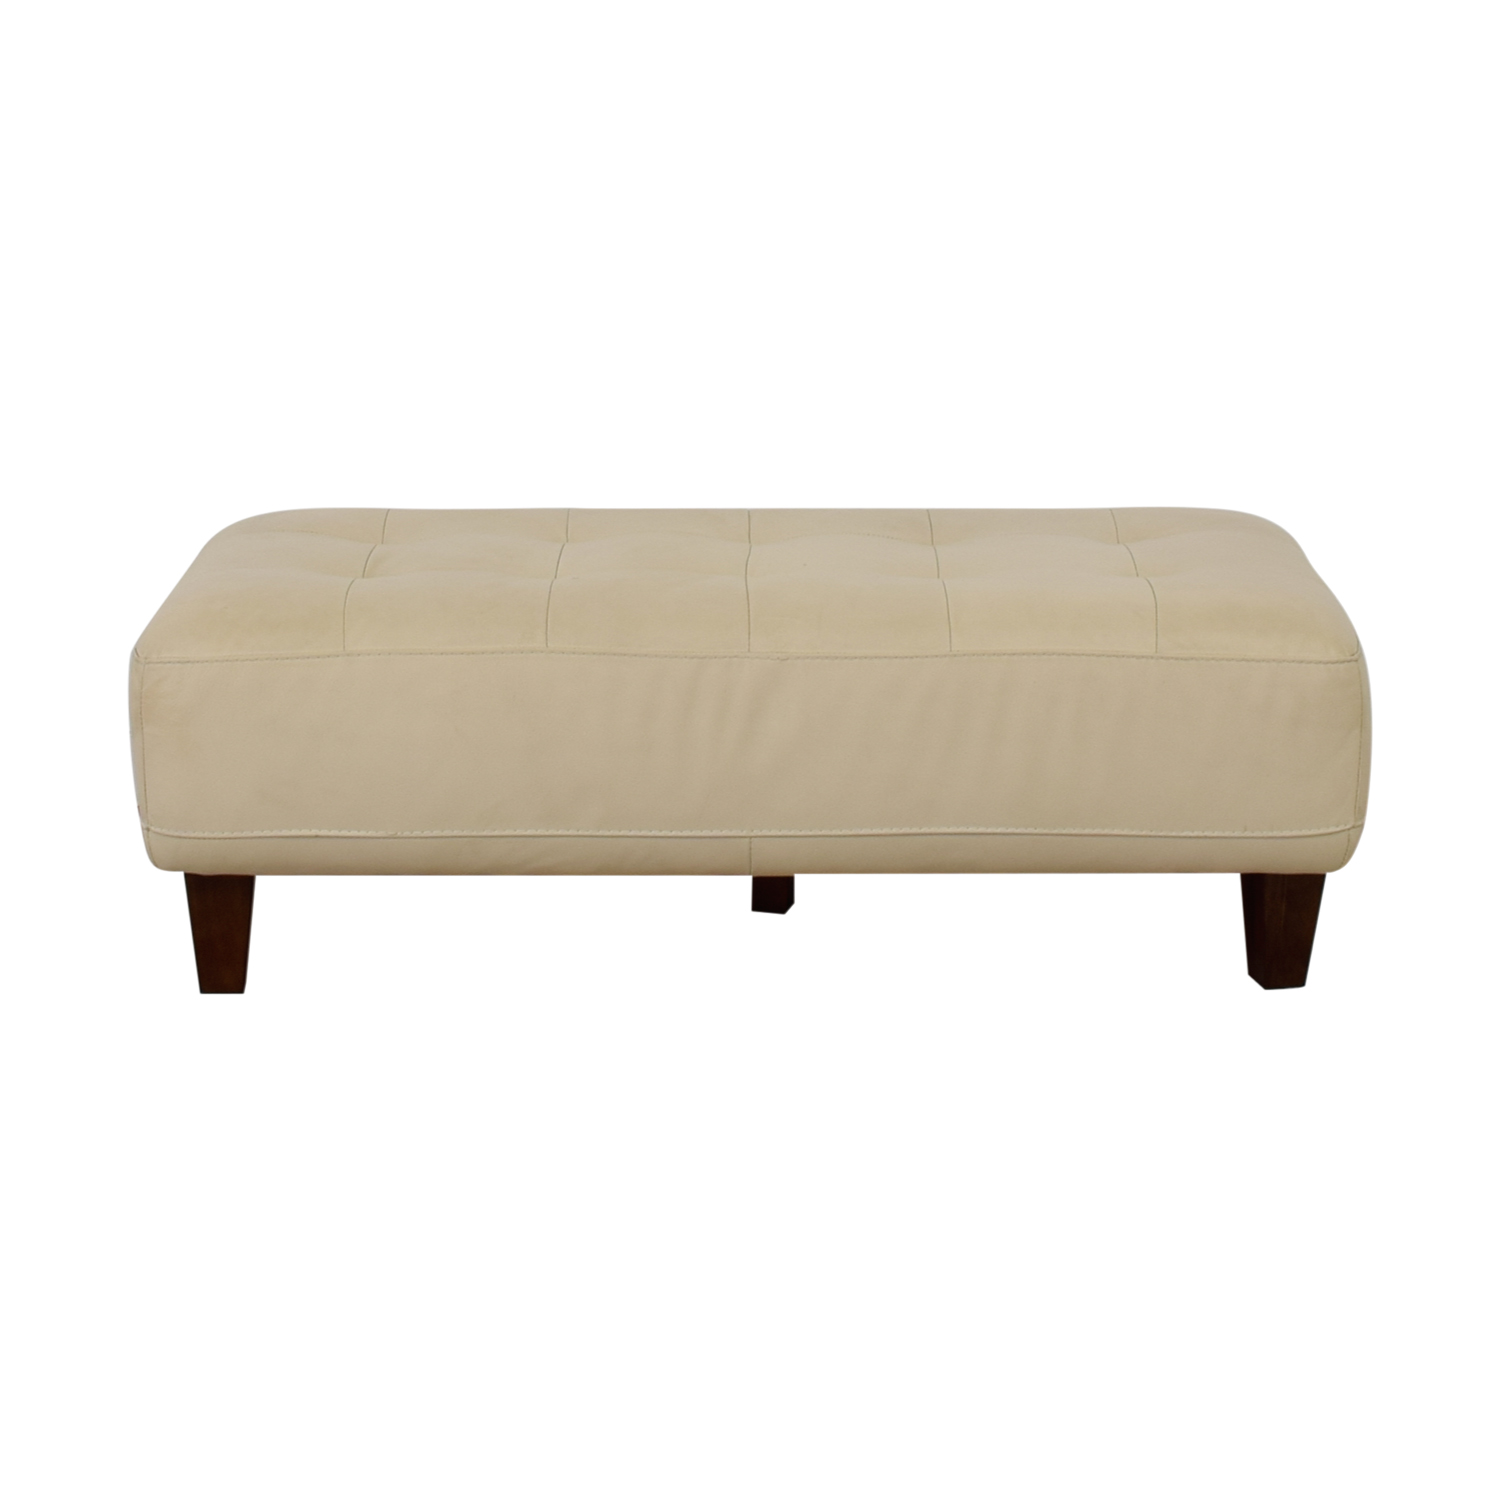 Chateau d'Ax Chateau d'Ax Eggshell Leather Ottoman Bench